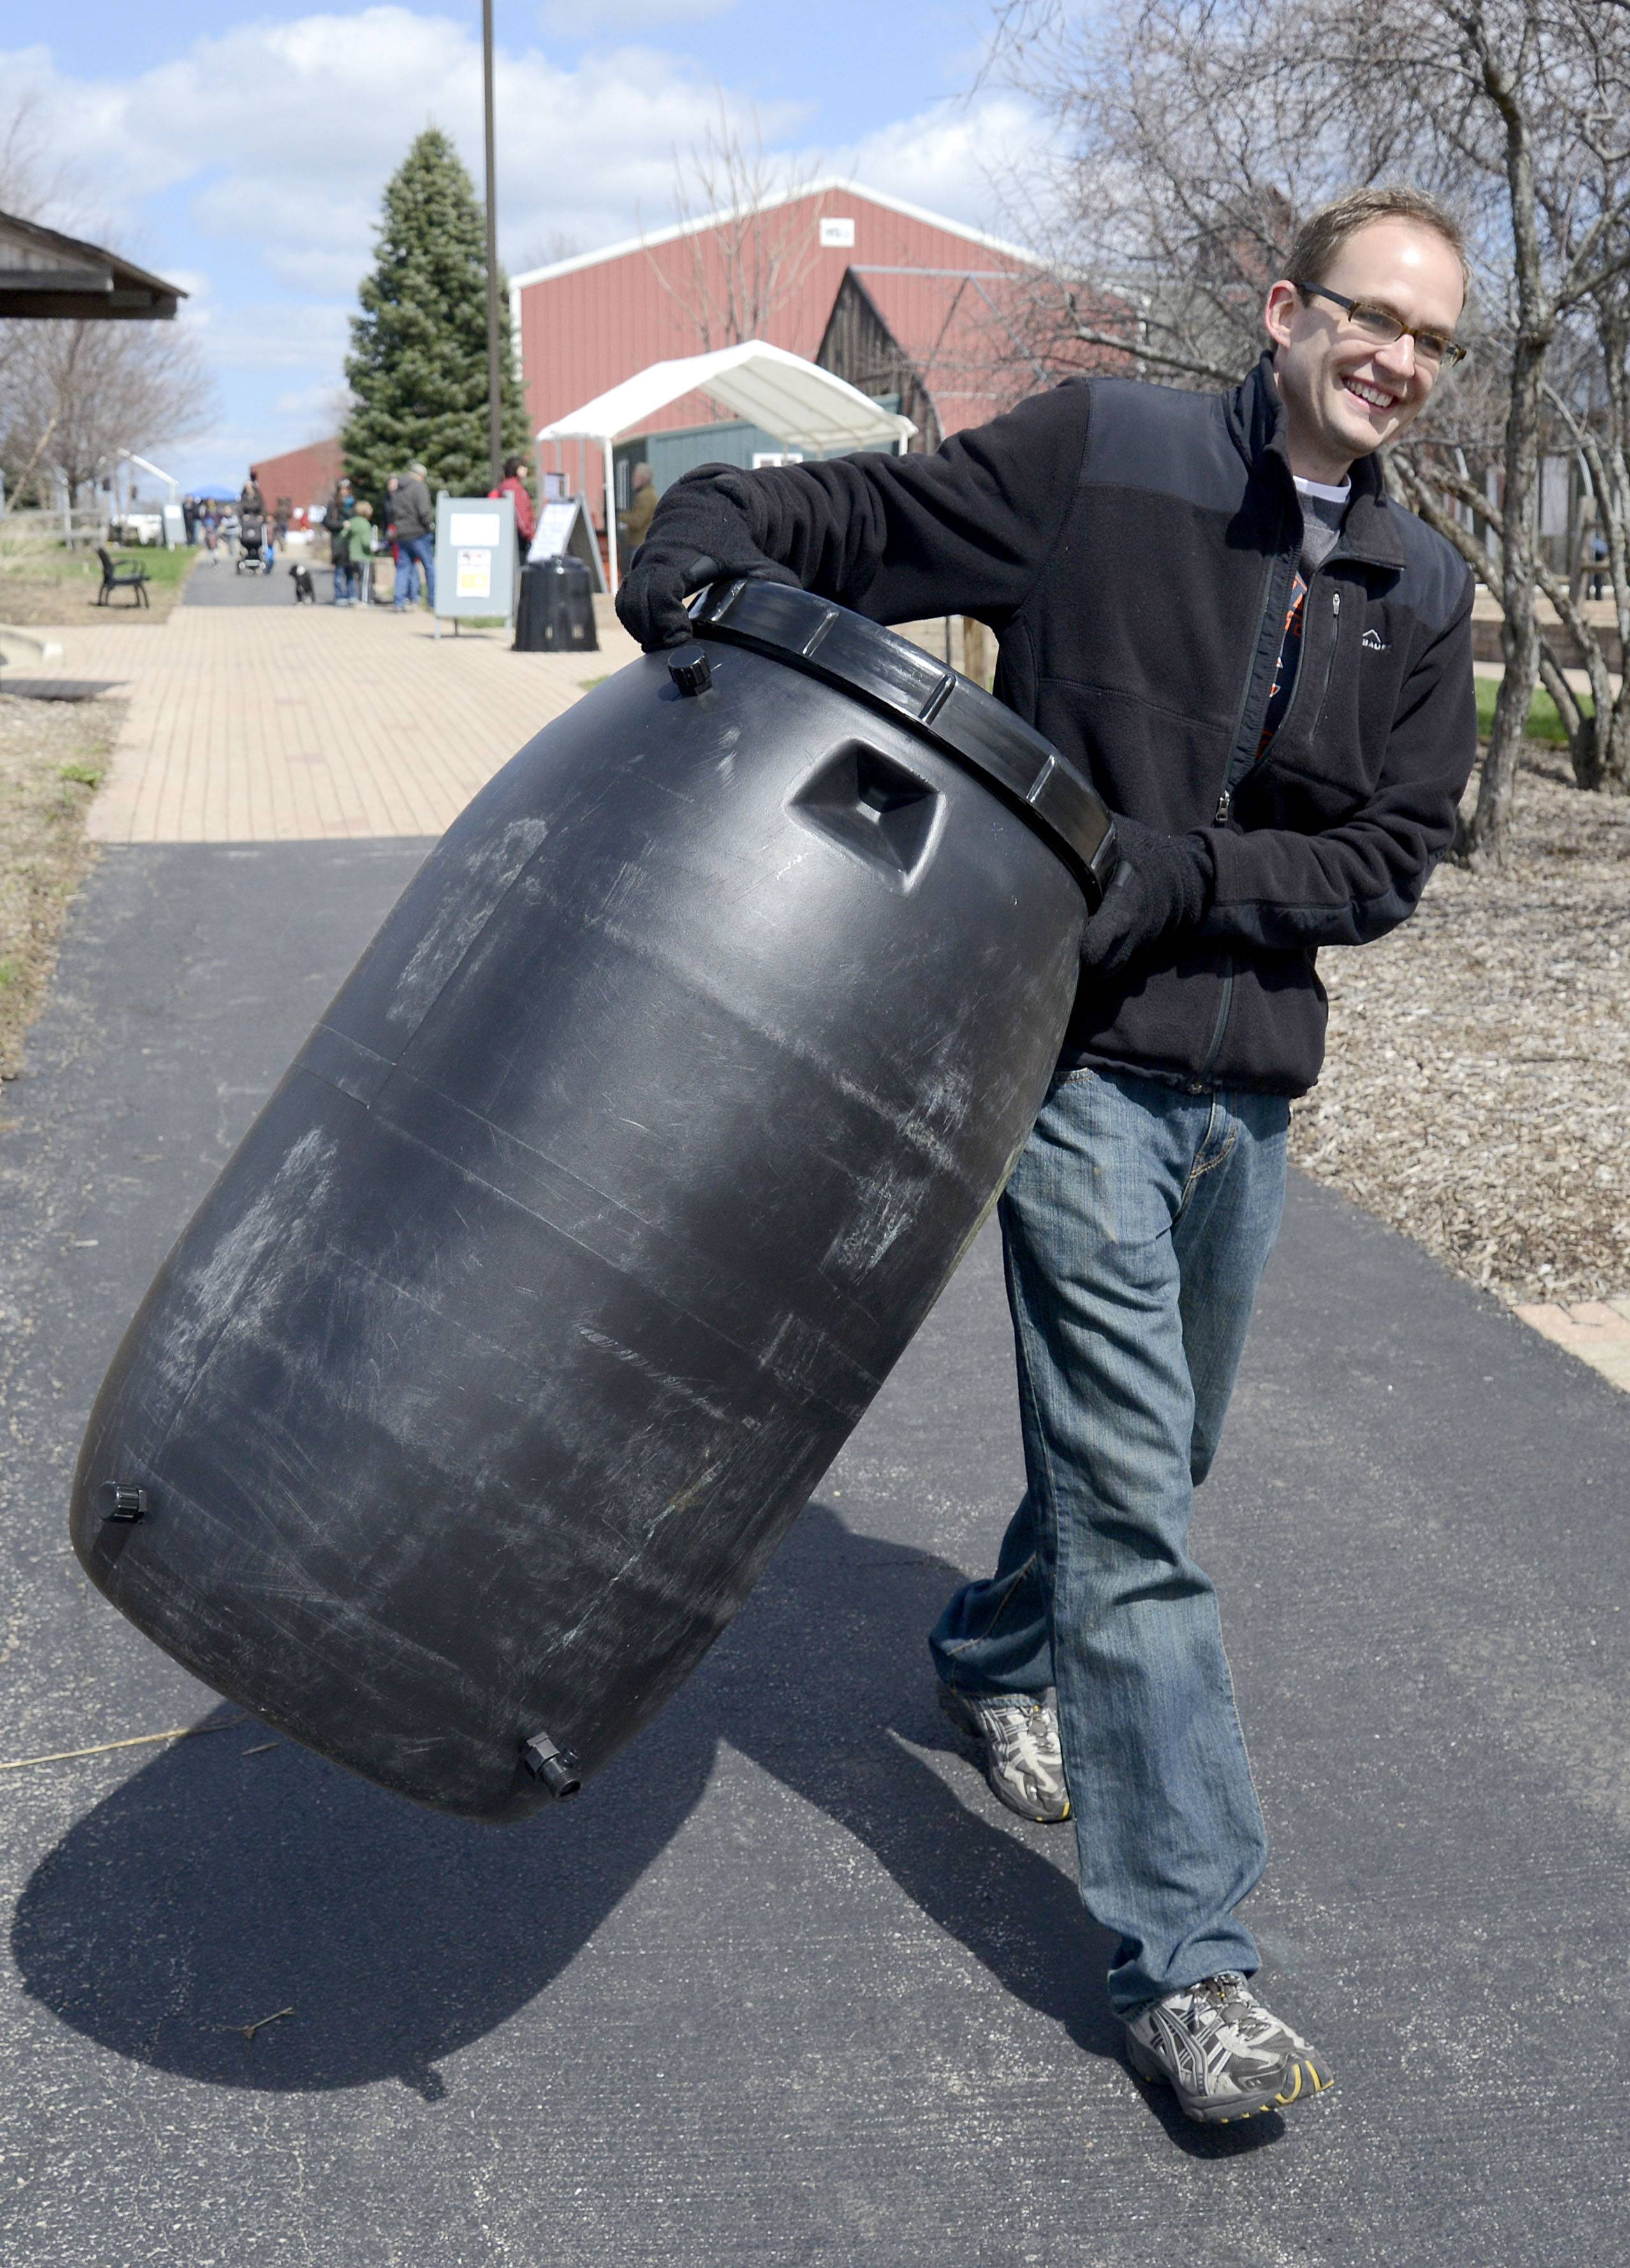 Nick Pohlman of Geneva lugs a rain barrel to his car after purchasing it at Peck Farm Park's Earth Day celebration last year.